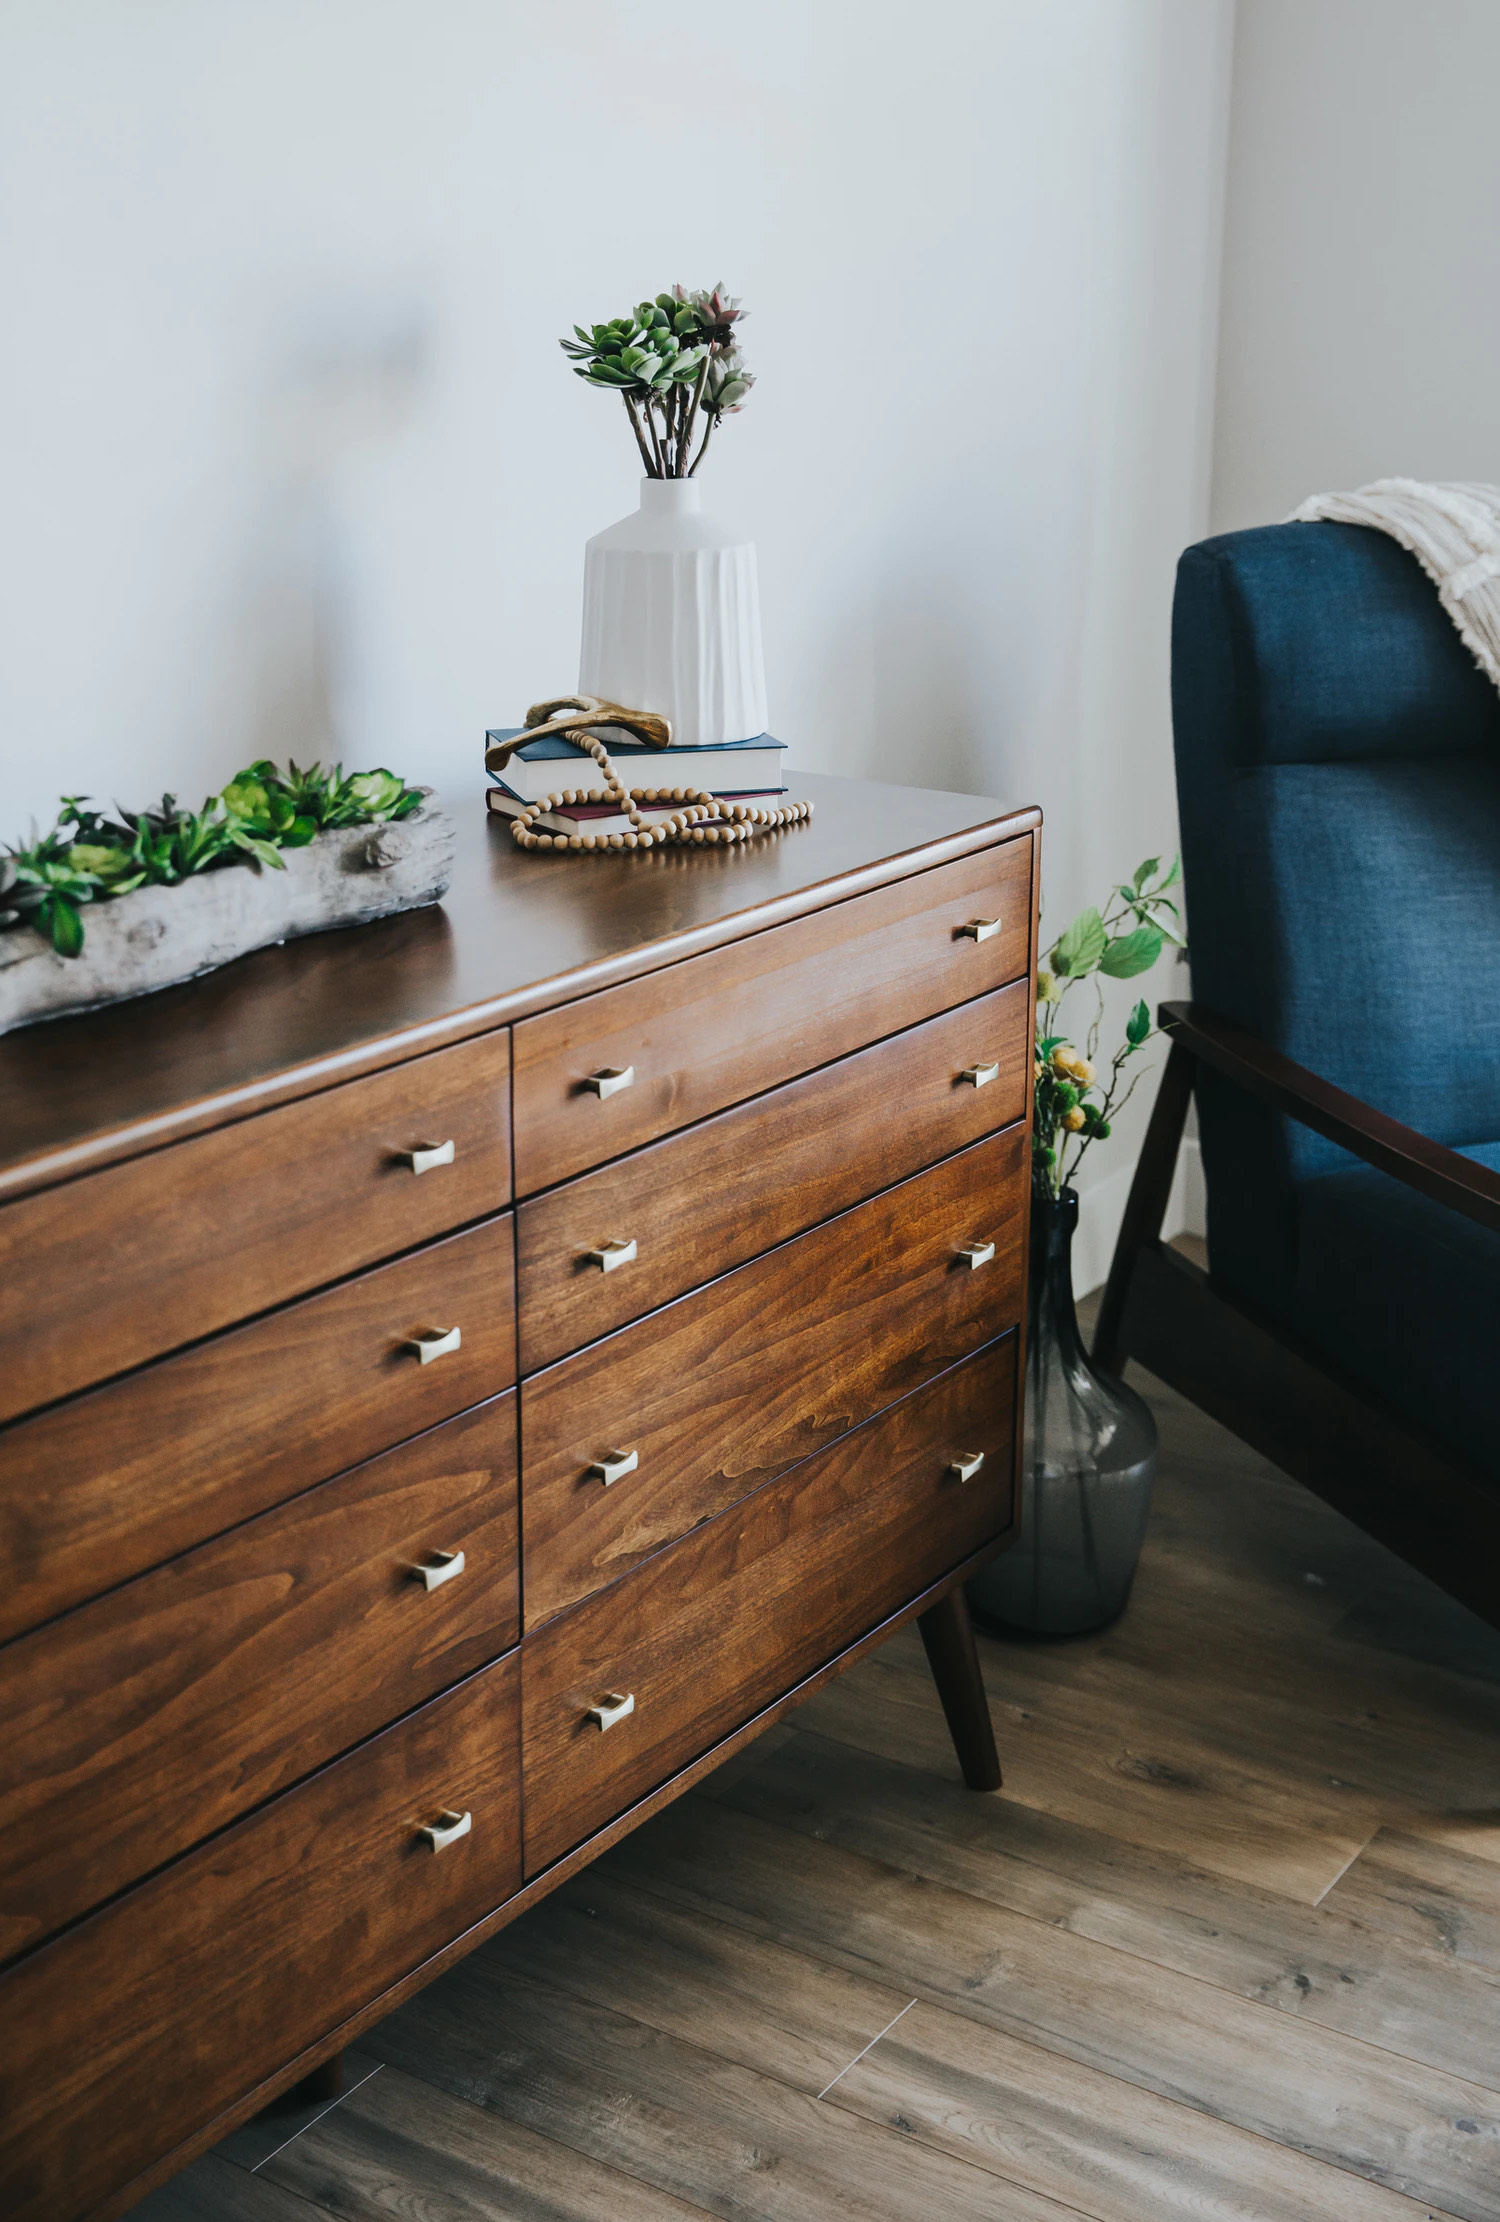 FloorFound | News - Yahoo Finance - Startup FloorFound recycles furniture to help solve U.S. climate crisis